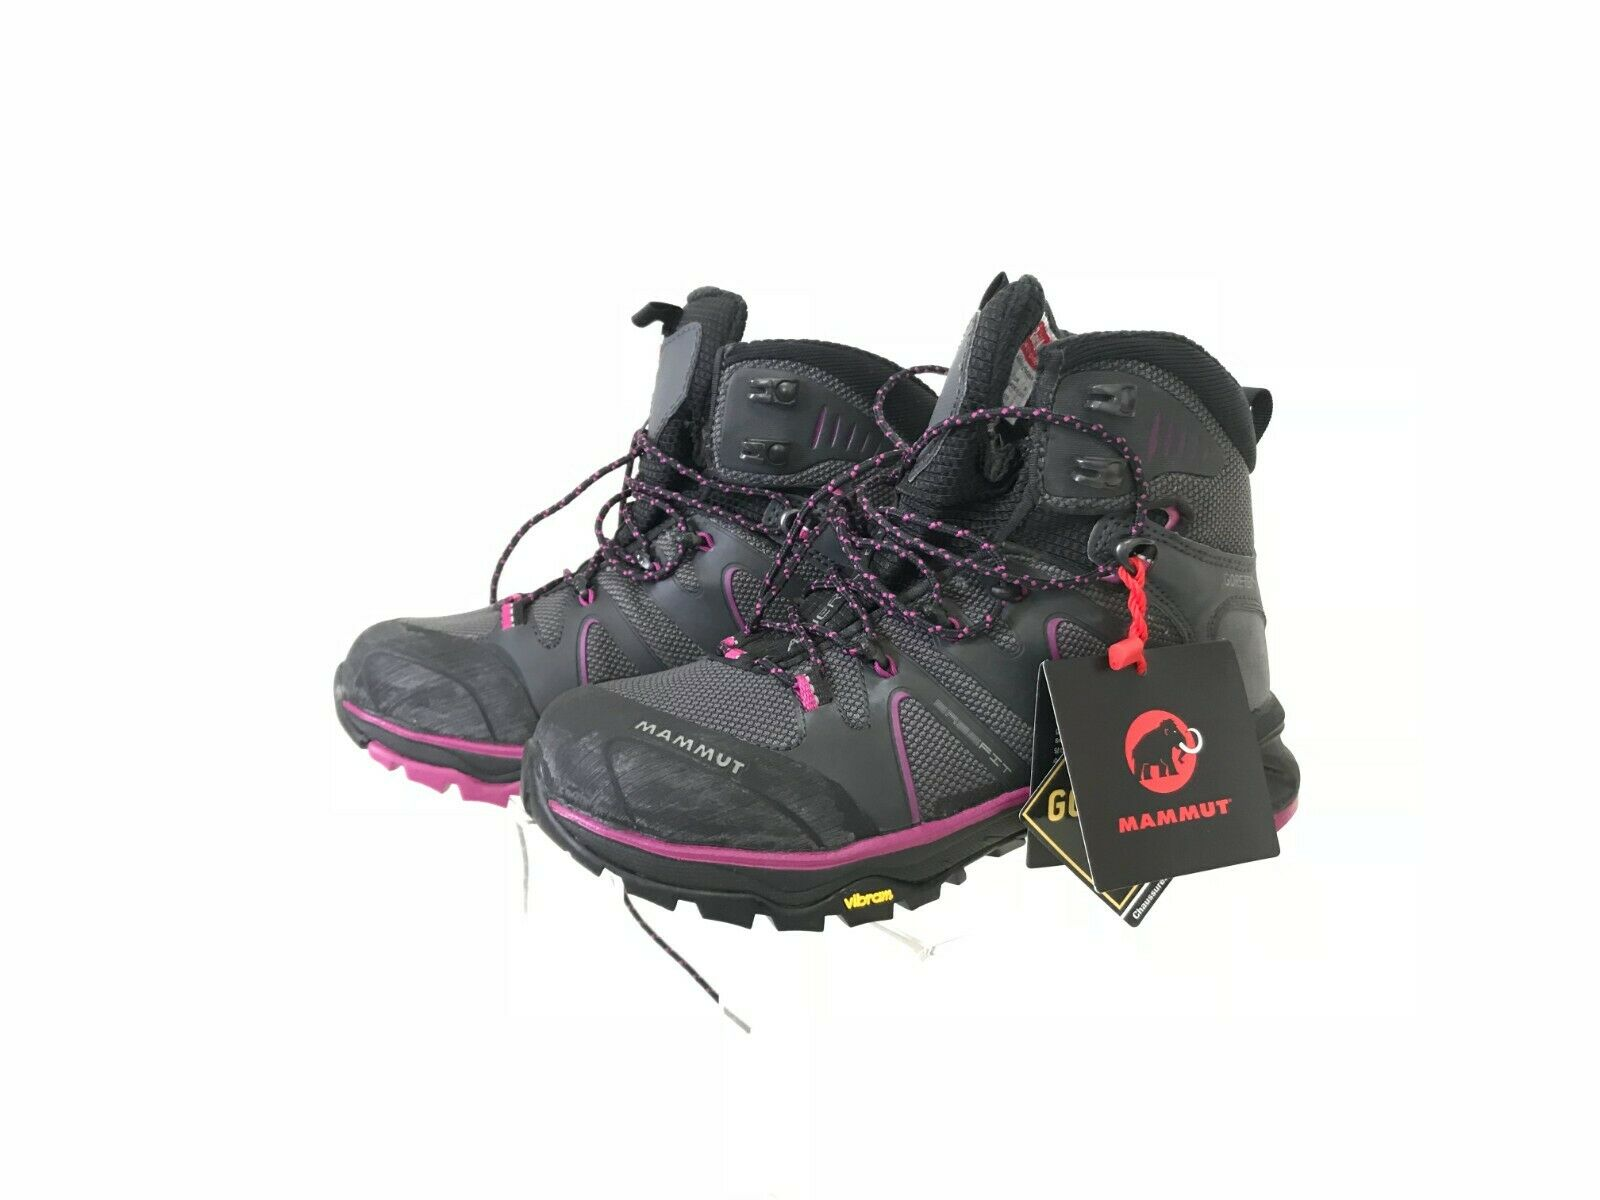 NEW Mammut  T Aenergy GTX Trekking shoes, Walking Boots for Ladies 6 Gore-Tex  sale with high discount